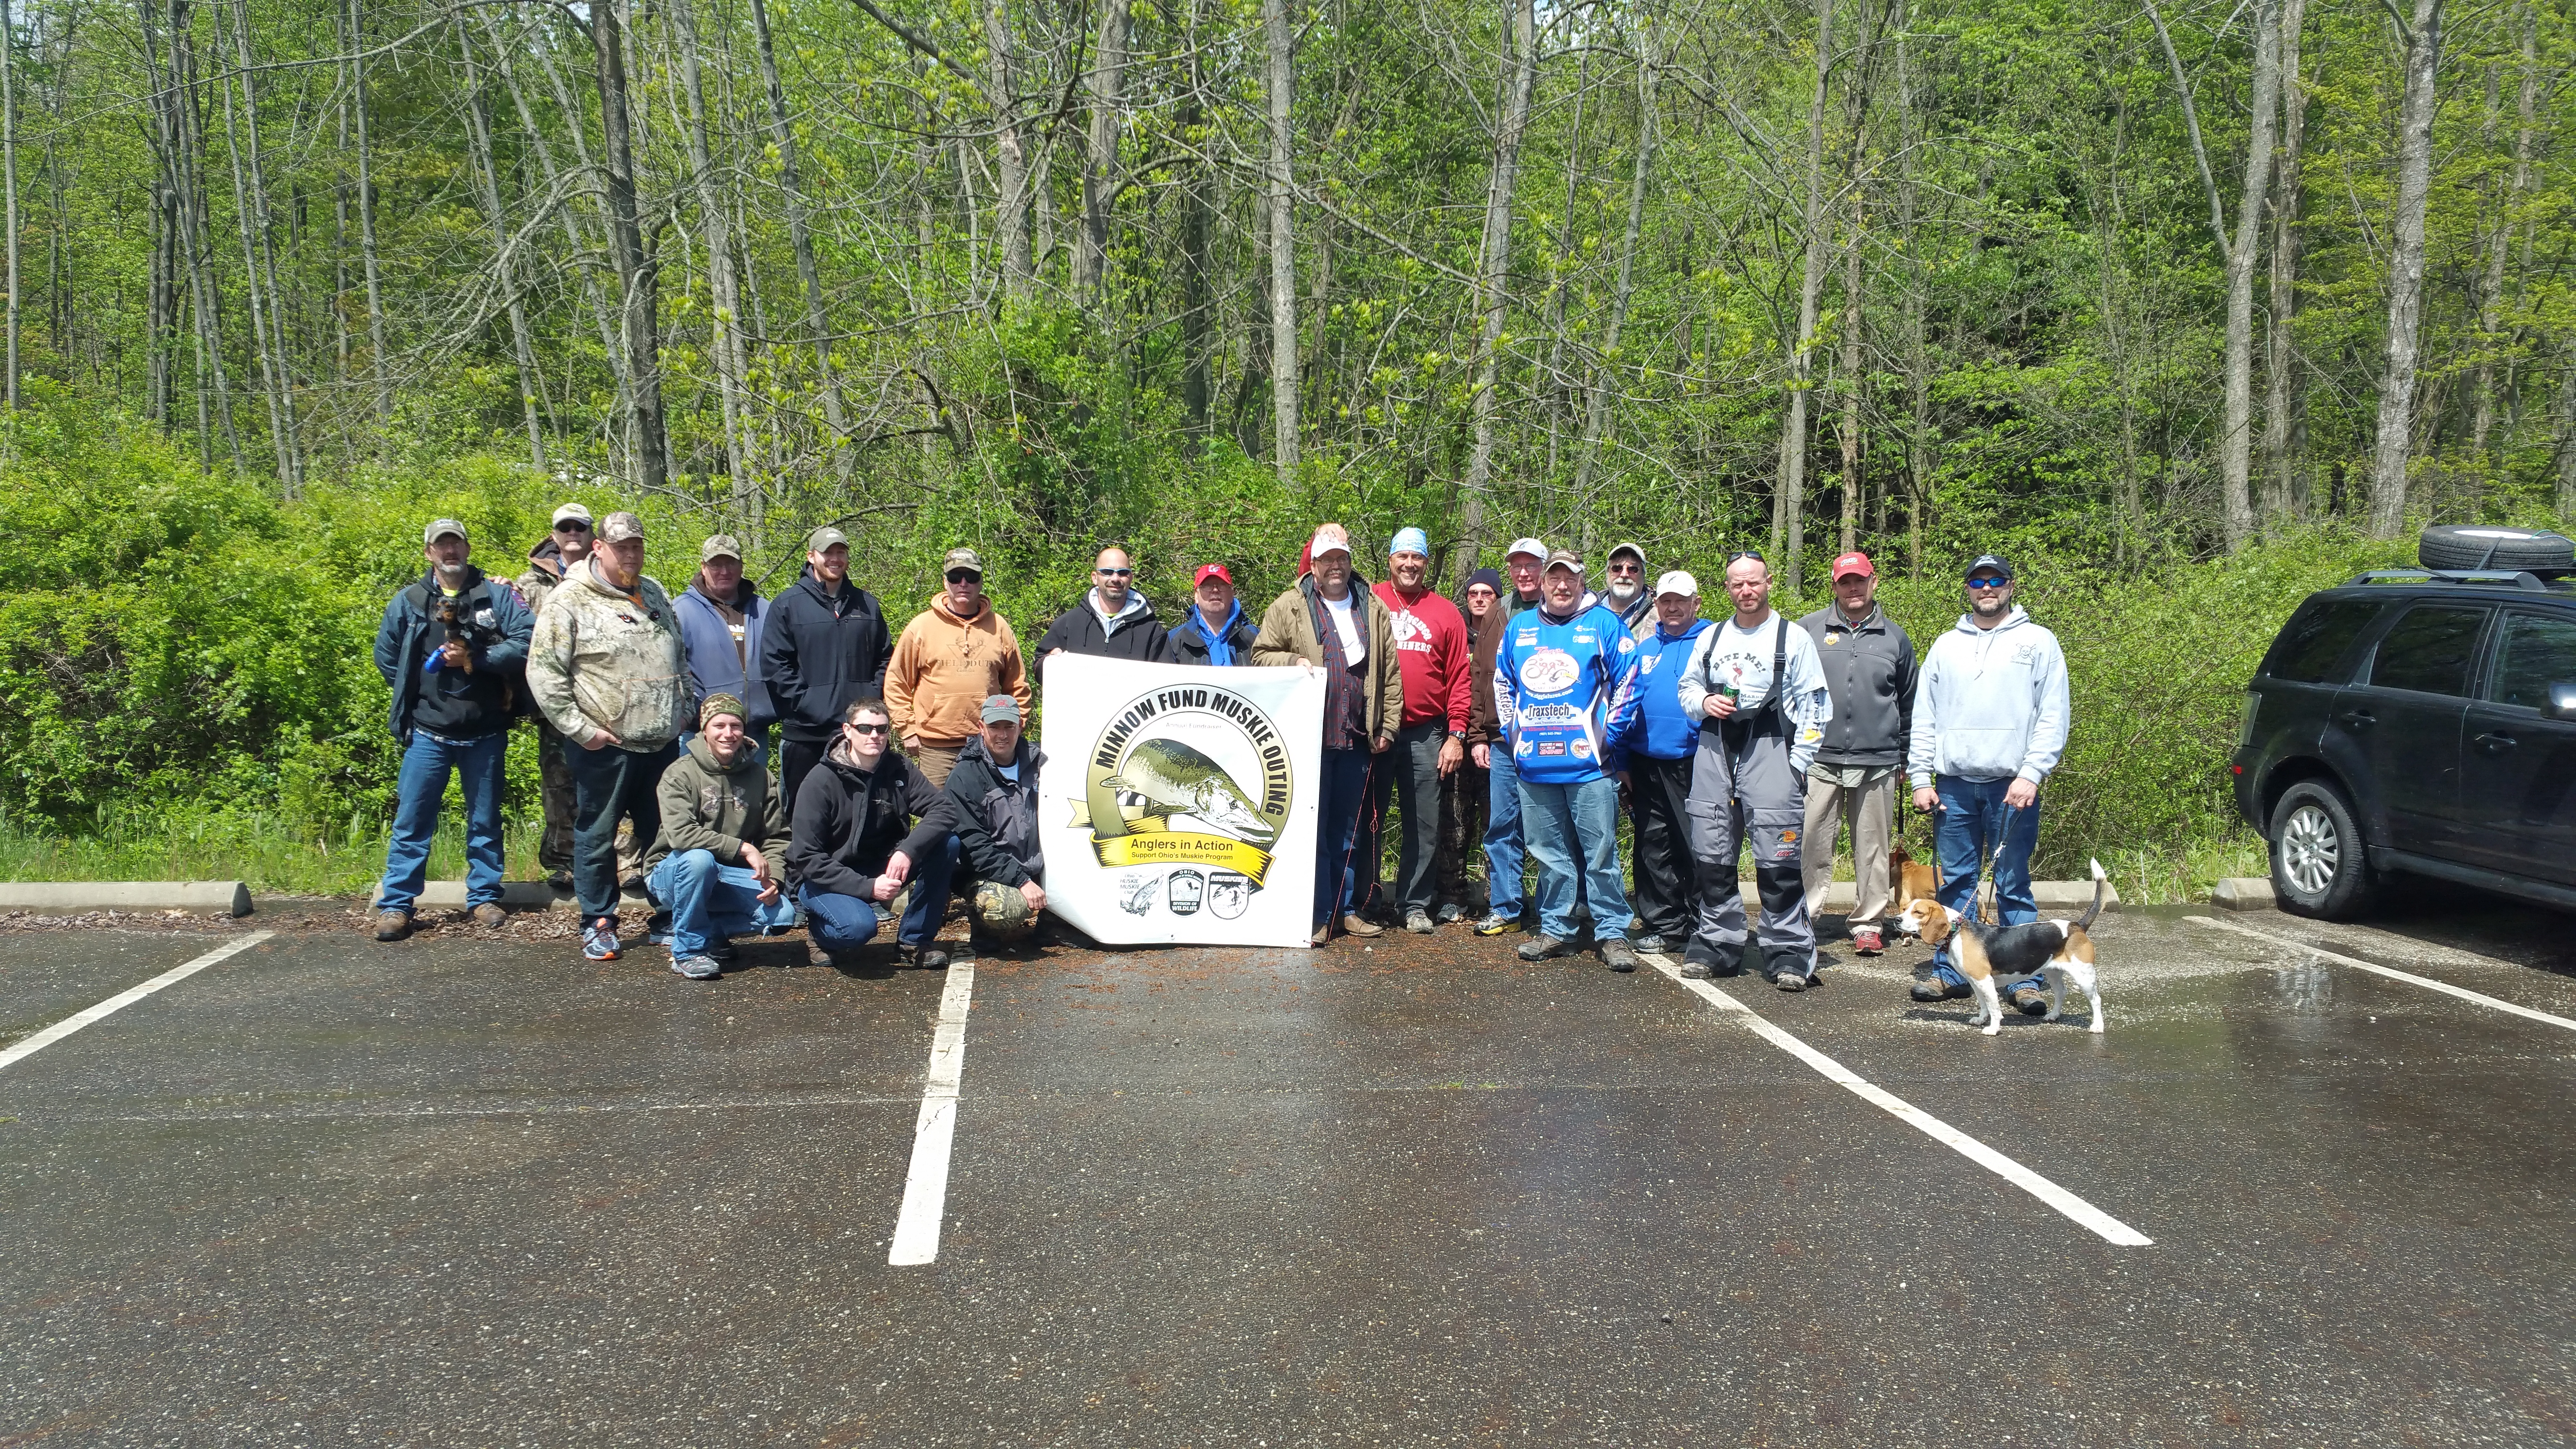 2016 Minnow Fund Outing Group Photo